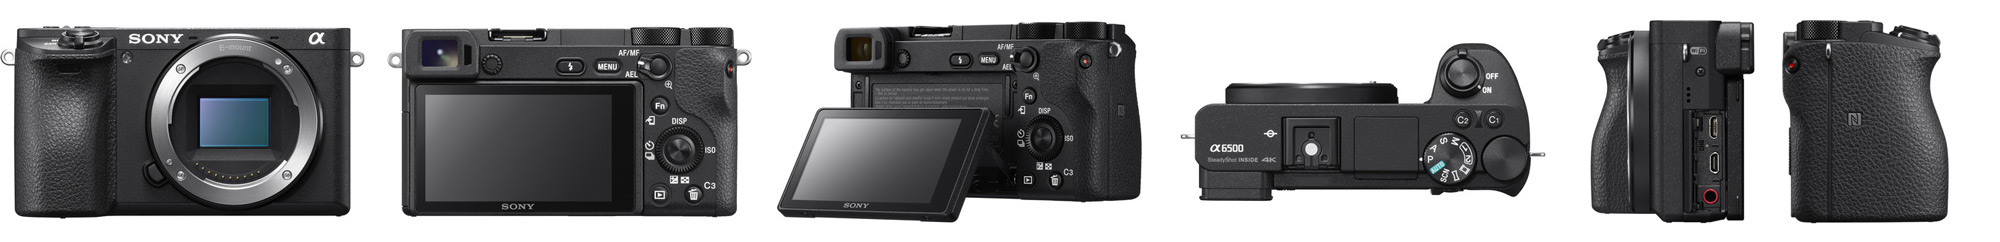 A6500-SONY-Review-Español-Construccion